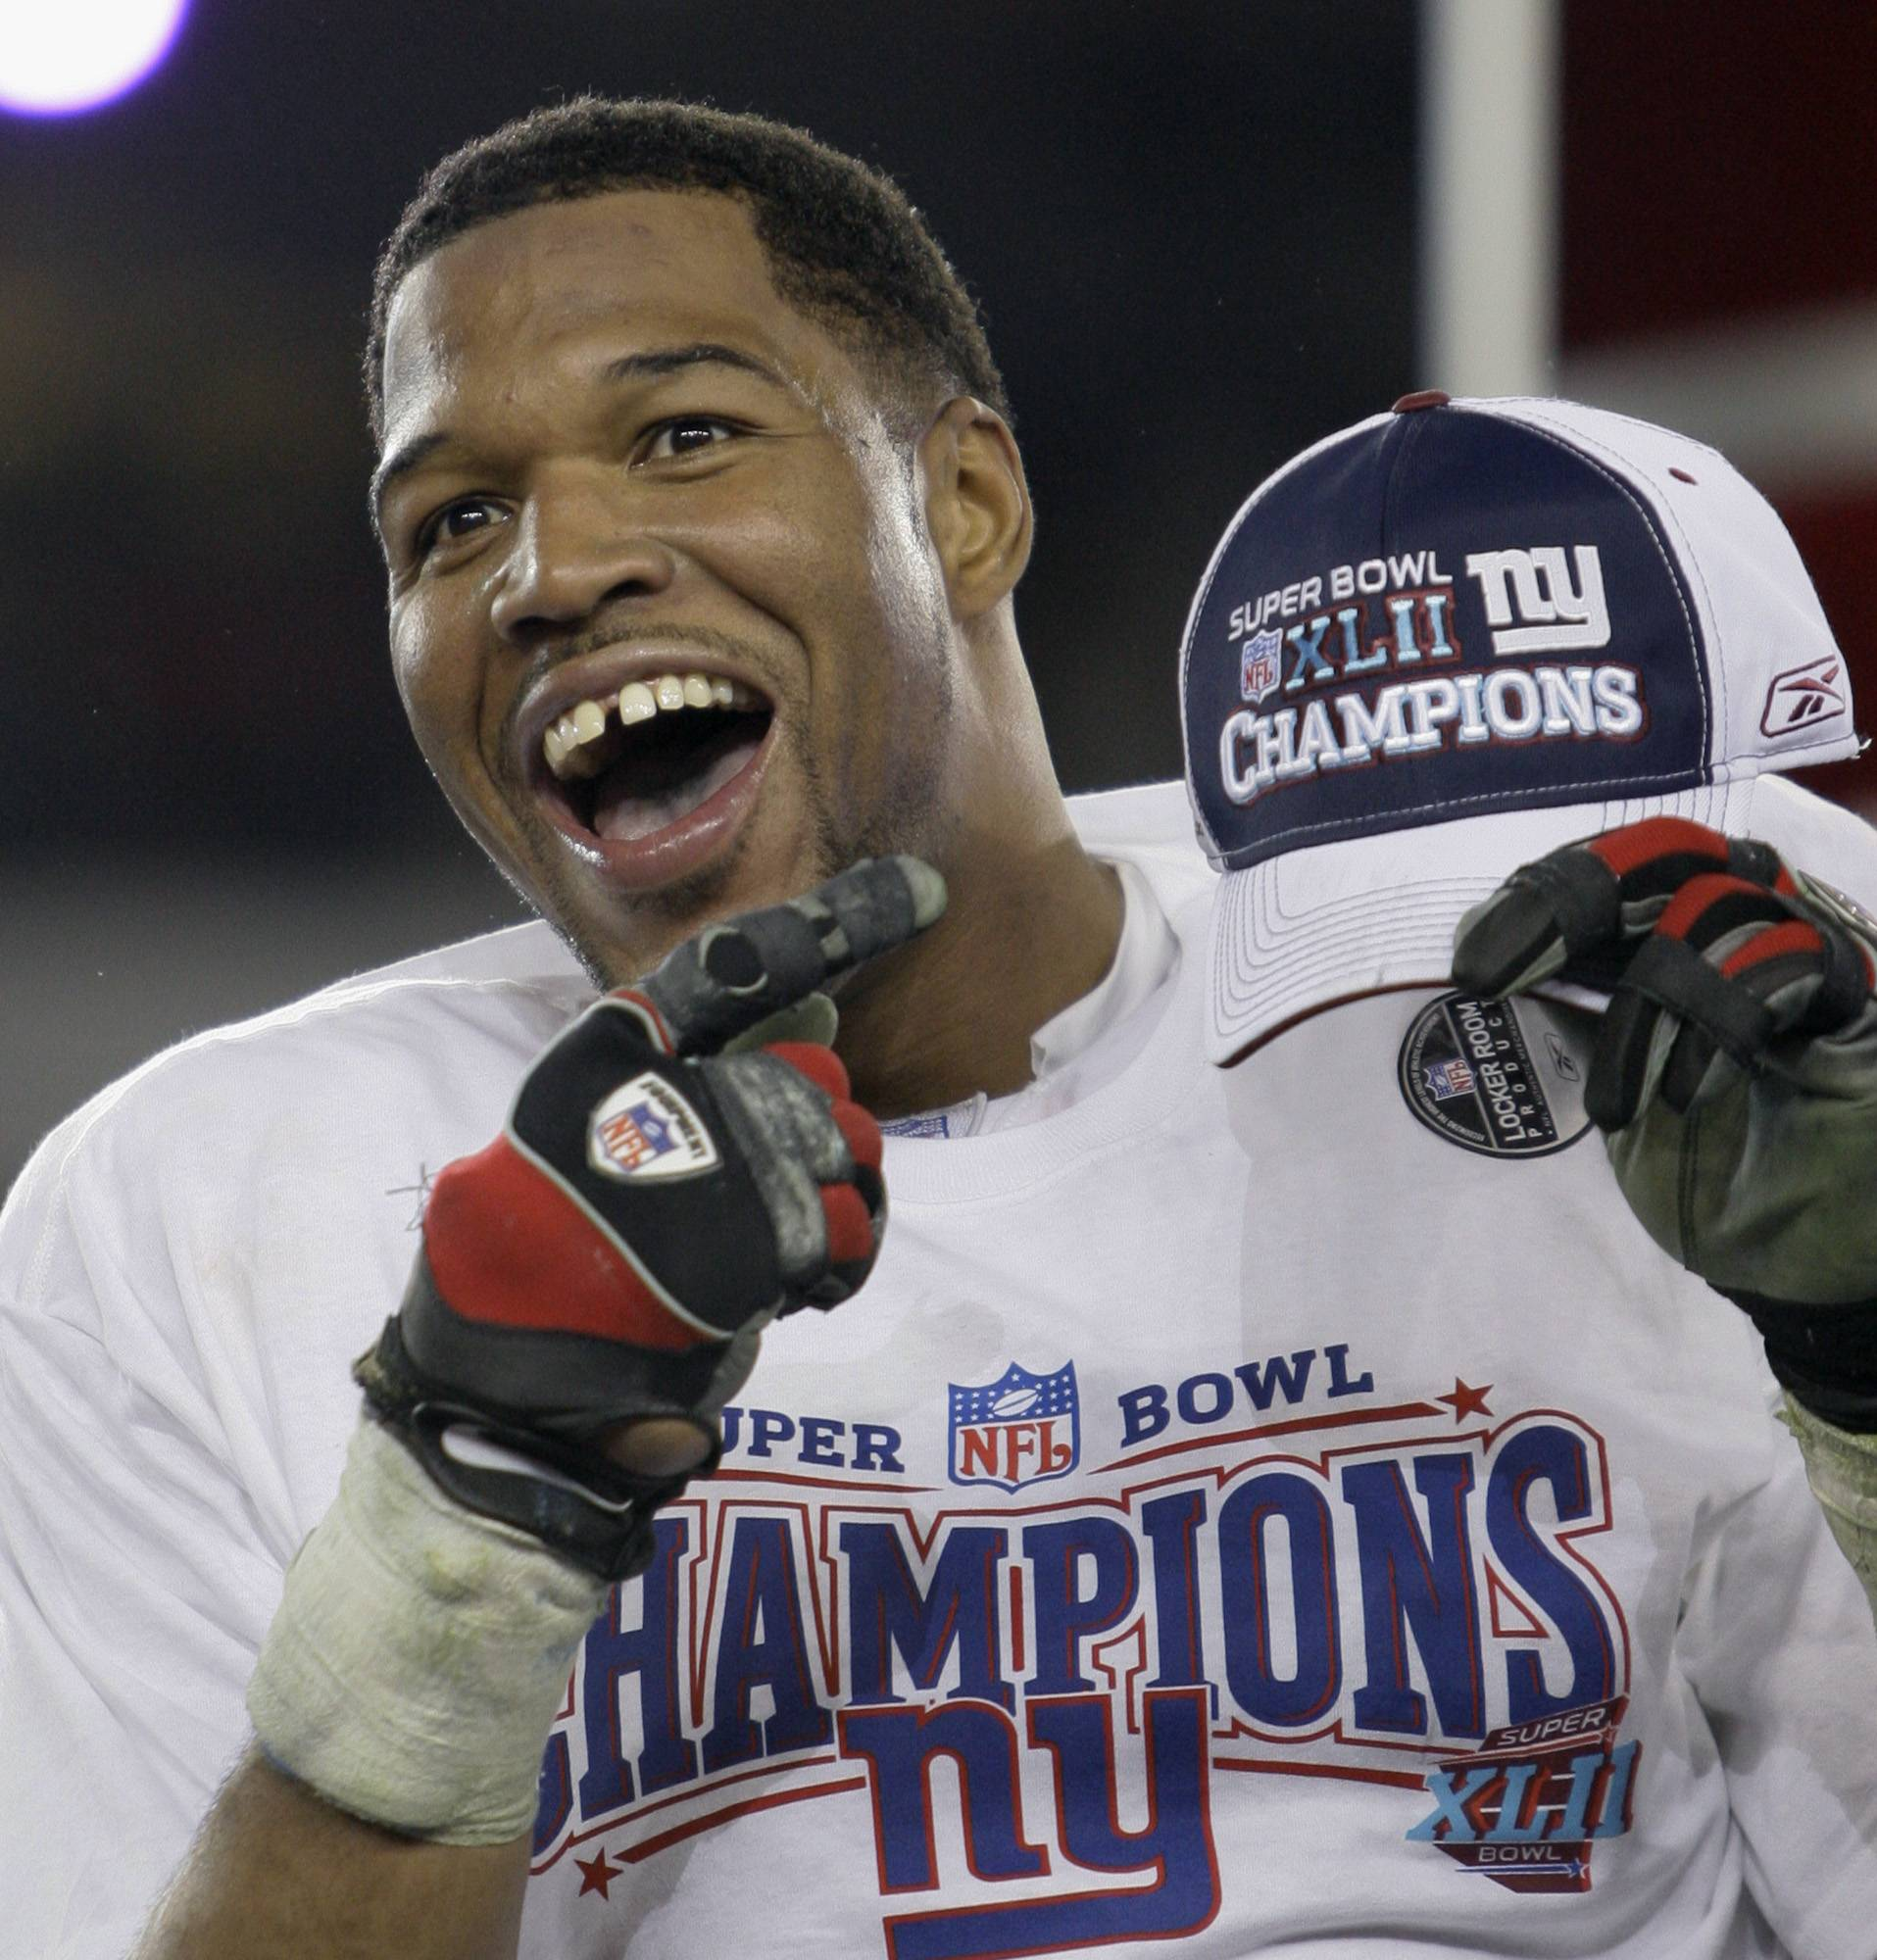 Former New York Giants defensive end Michael Strahan, shown here in 2008, was a game-changer on the field -- but he made his mark elsewhere with his gregarious personality, gaptoothed smile and willingness to step out of his comfort zone. He became a regular in commercials.